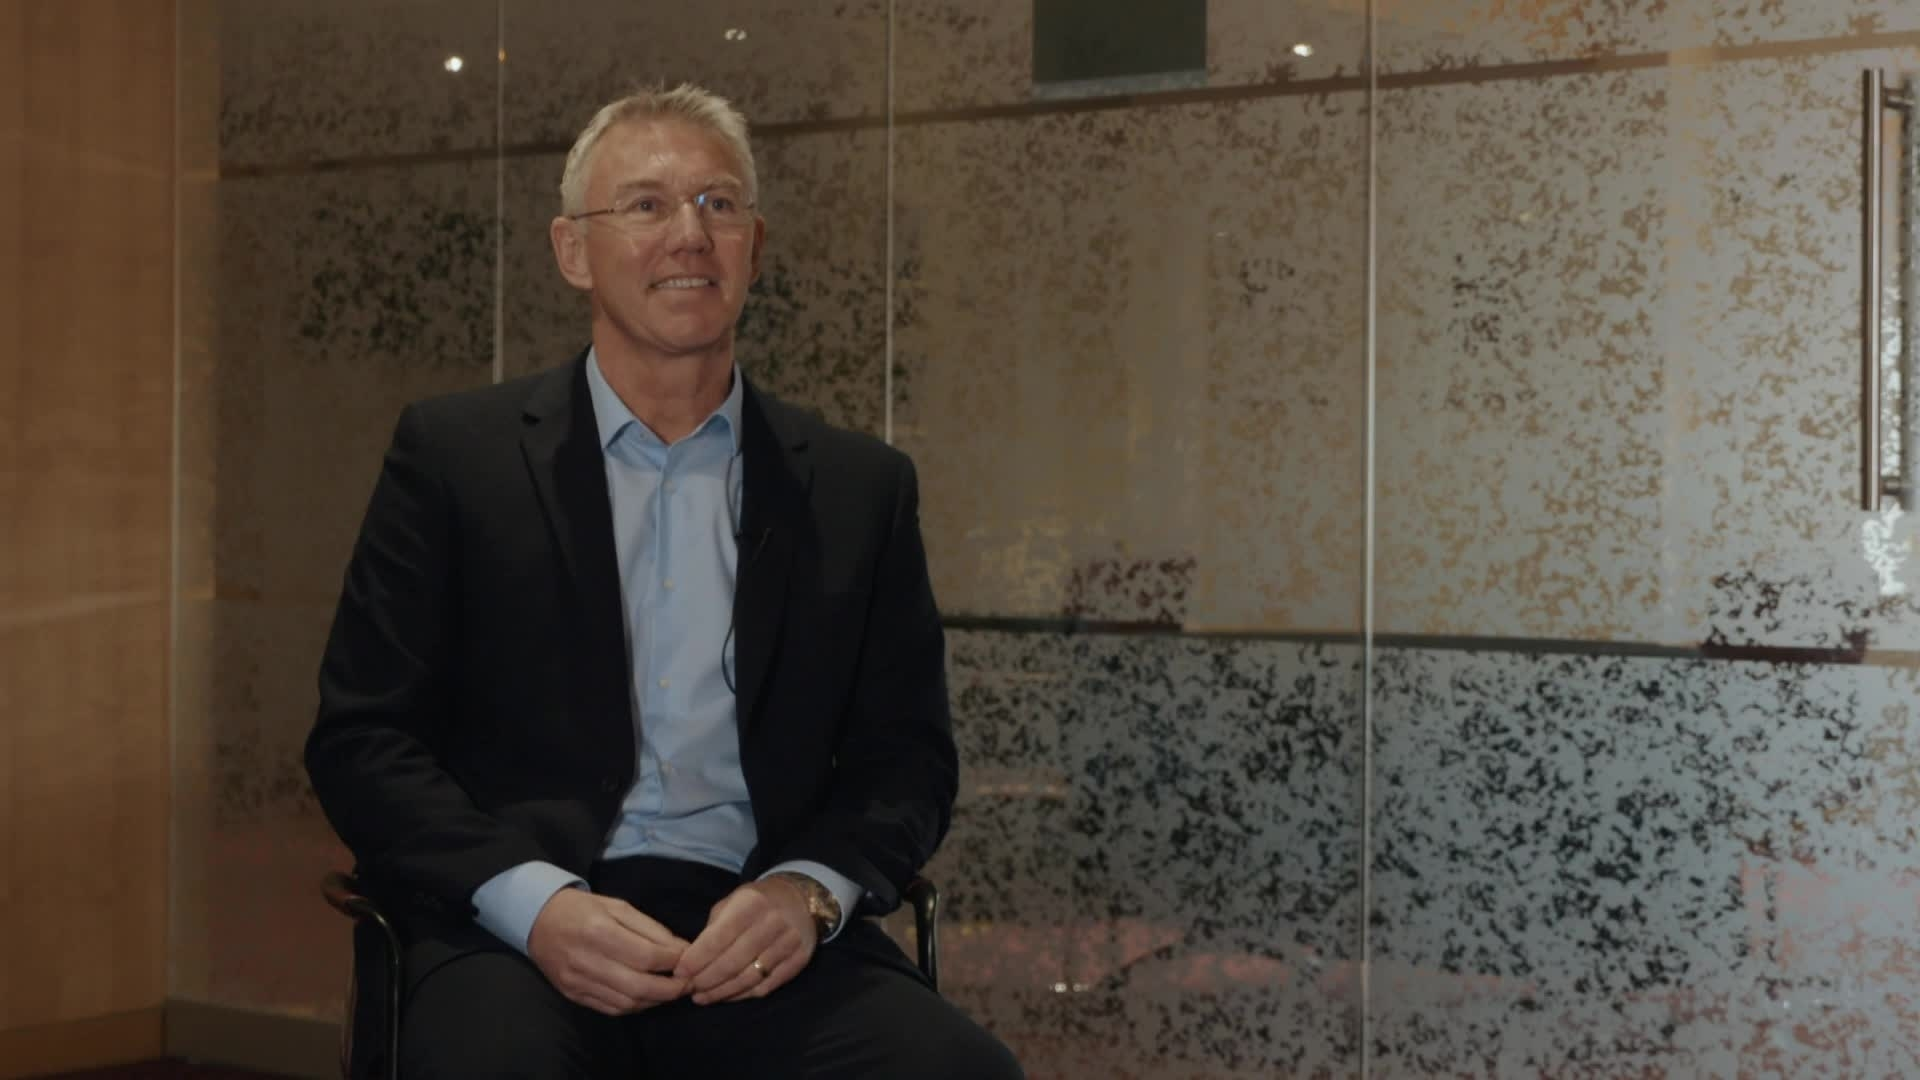 First interview with Nigel Adkins (March 2021)